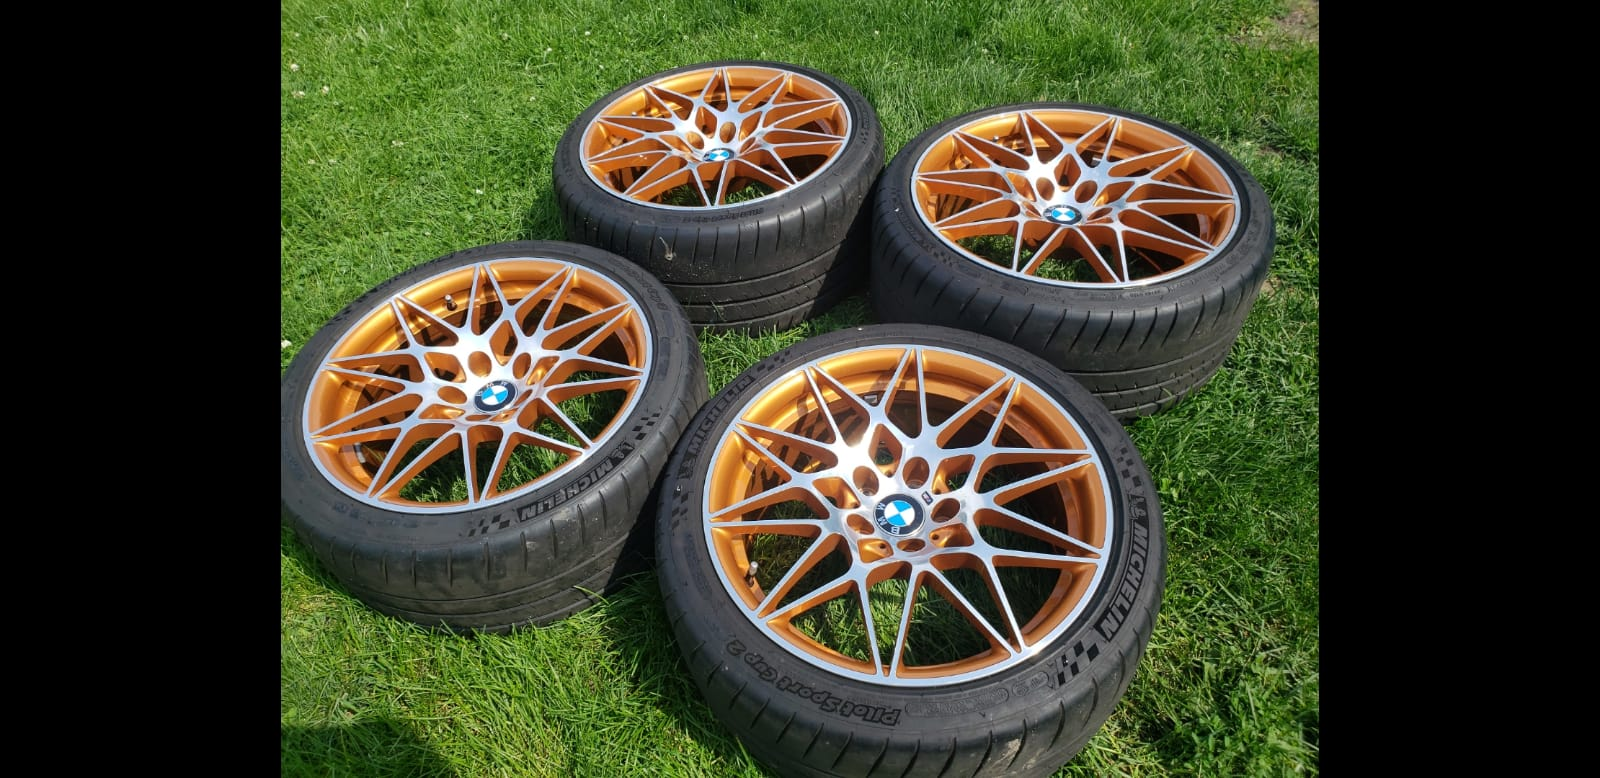 Bmw M4 Gts Rims Tires For Sale Bmw M3 And Bmw M4 Forum